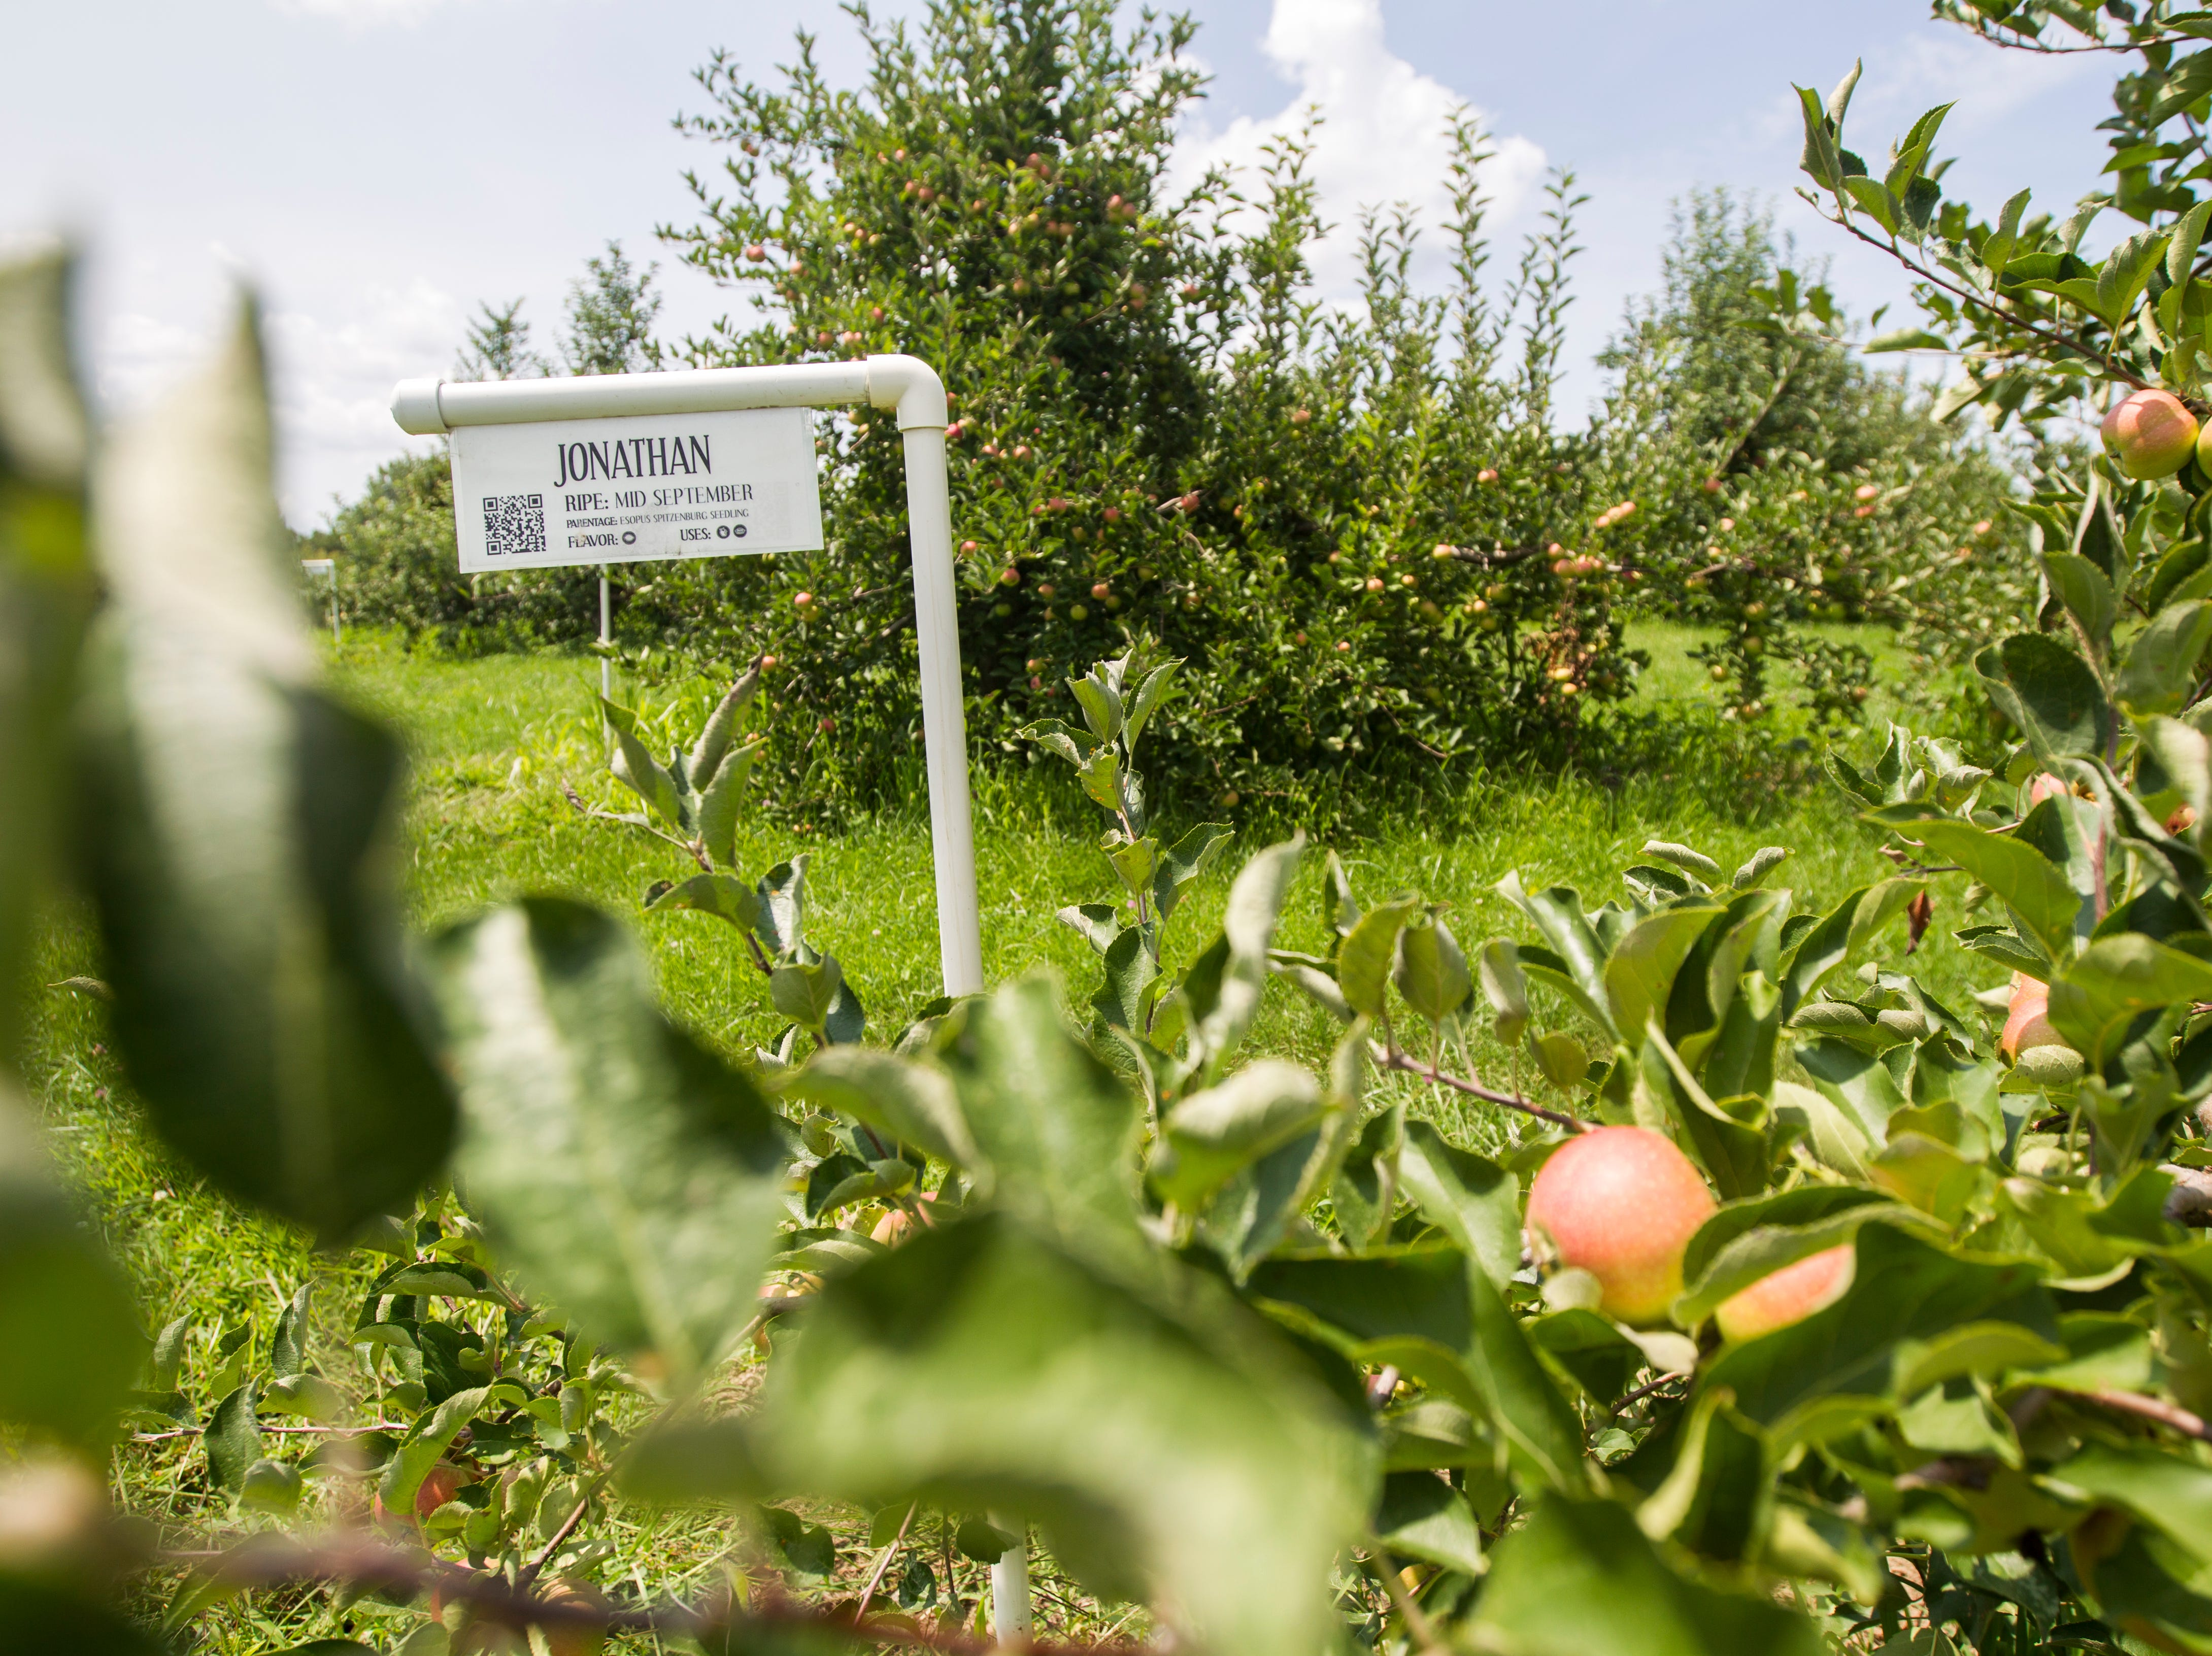 Jonathan apples are seen on Wednesday, Aug. 1, 2018, at Wilson's Apple Orchard in Iowa City, Iowa. The orchard is open from Aug. 1 through Oct. 31, 10 a.m. to 6 p.m daily.